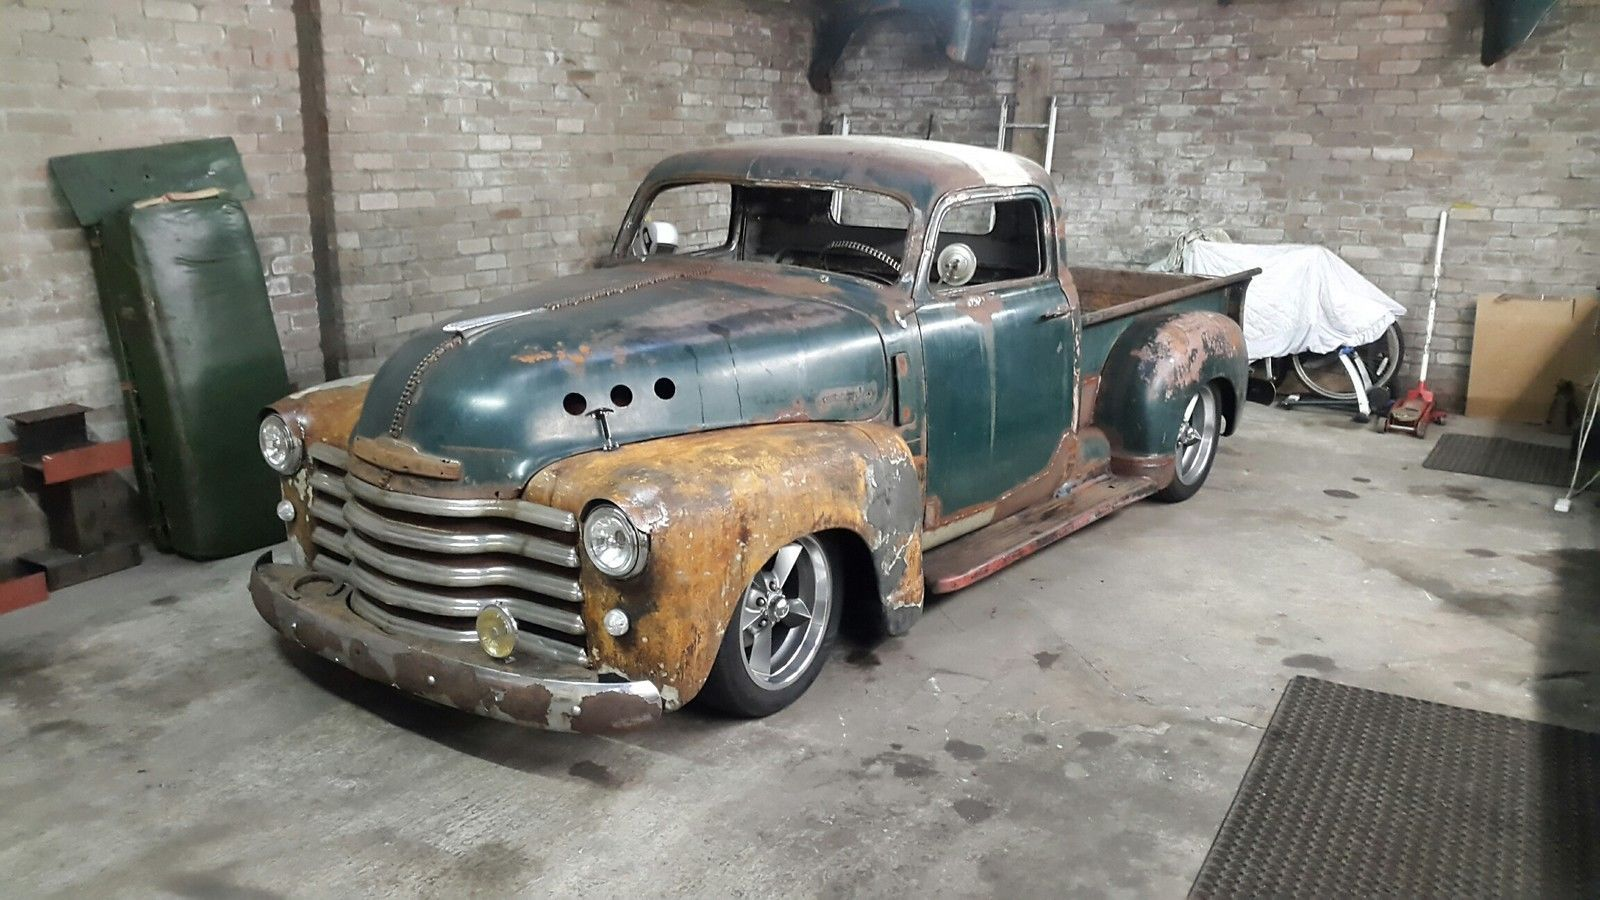 Hot Rod Rat Rod Classic Cars 98 Finished Project Classic Cars